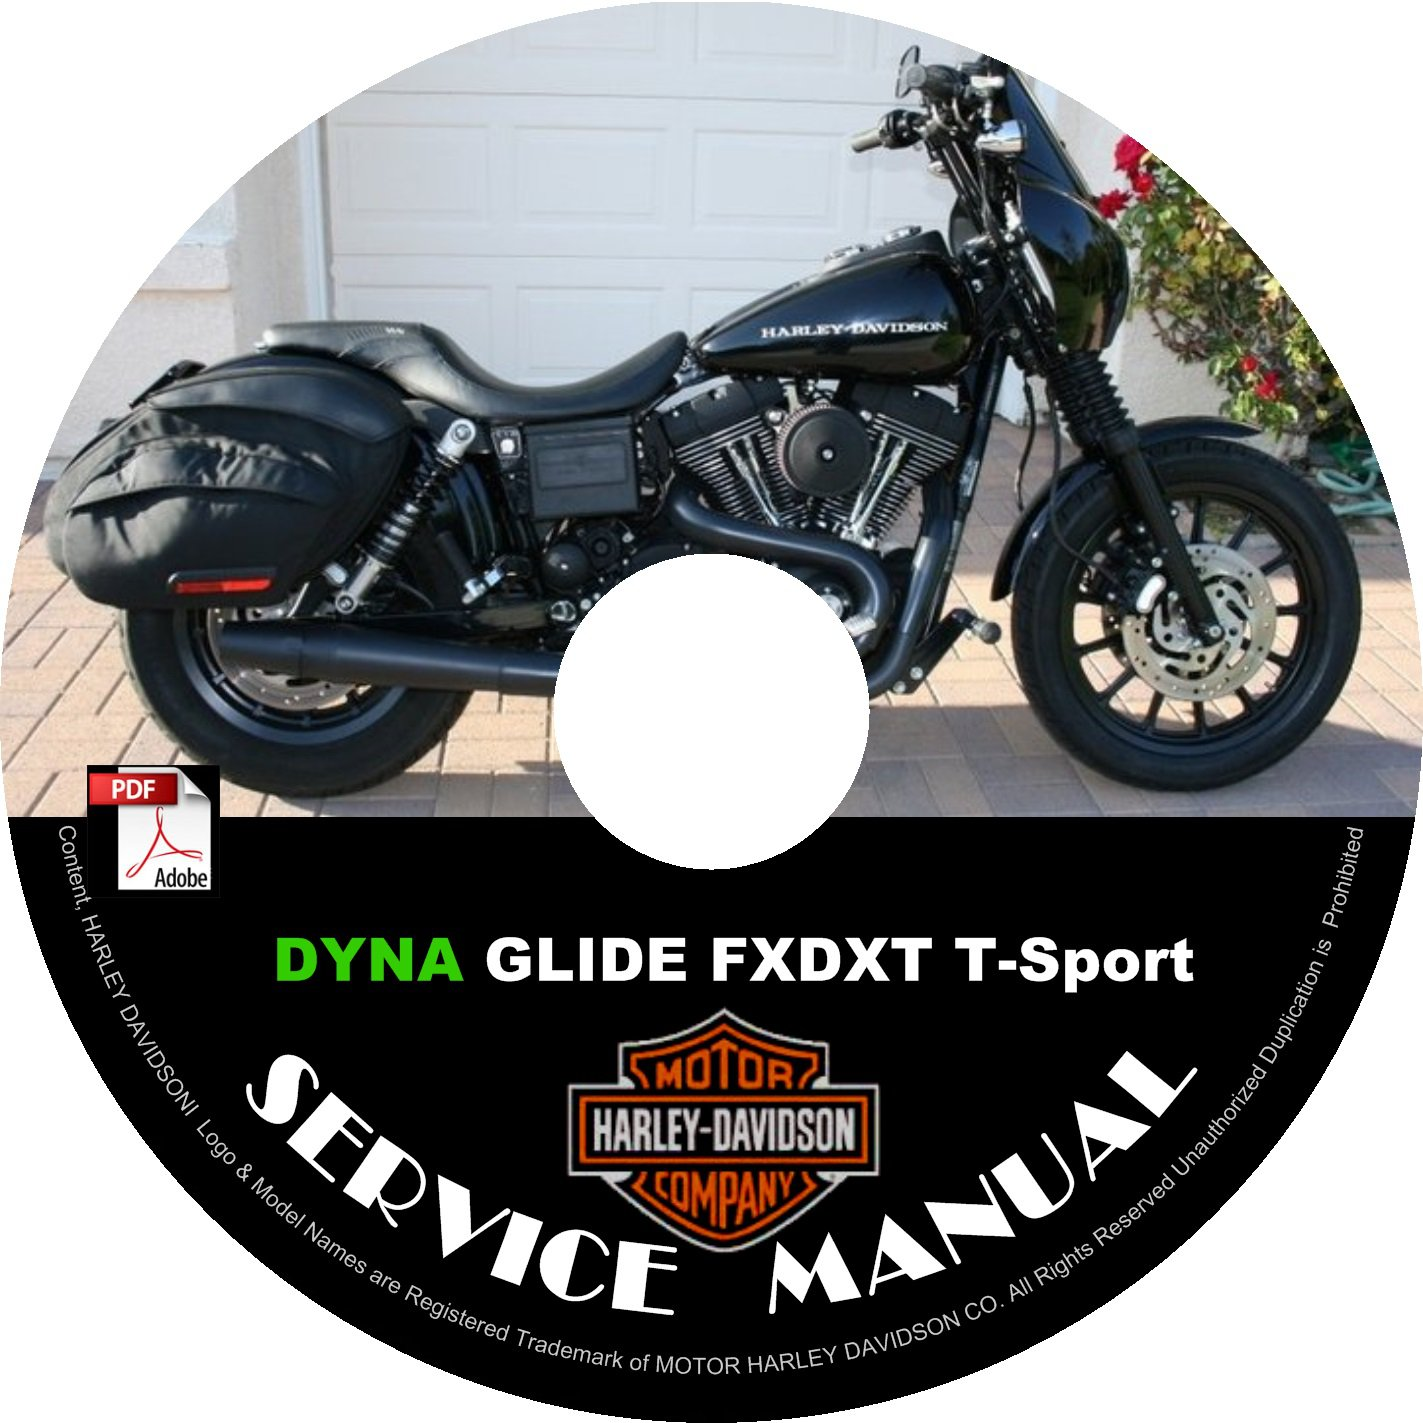 2002 Harley Davidson DYNA GLIDE FXDXT T-Sport Service Repair Shop Manual on CD Fix Rebuild Workshop